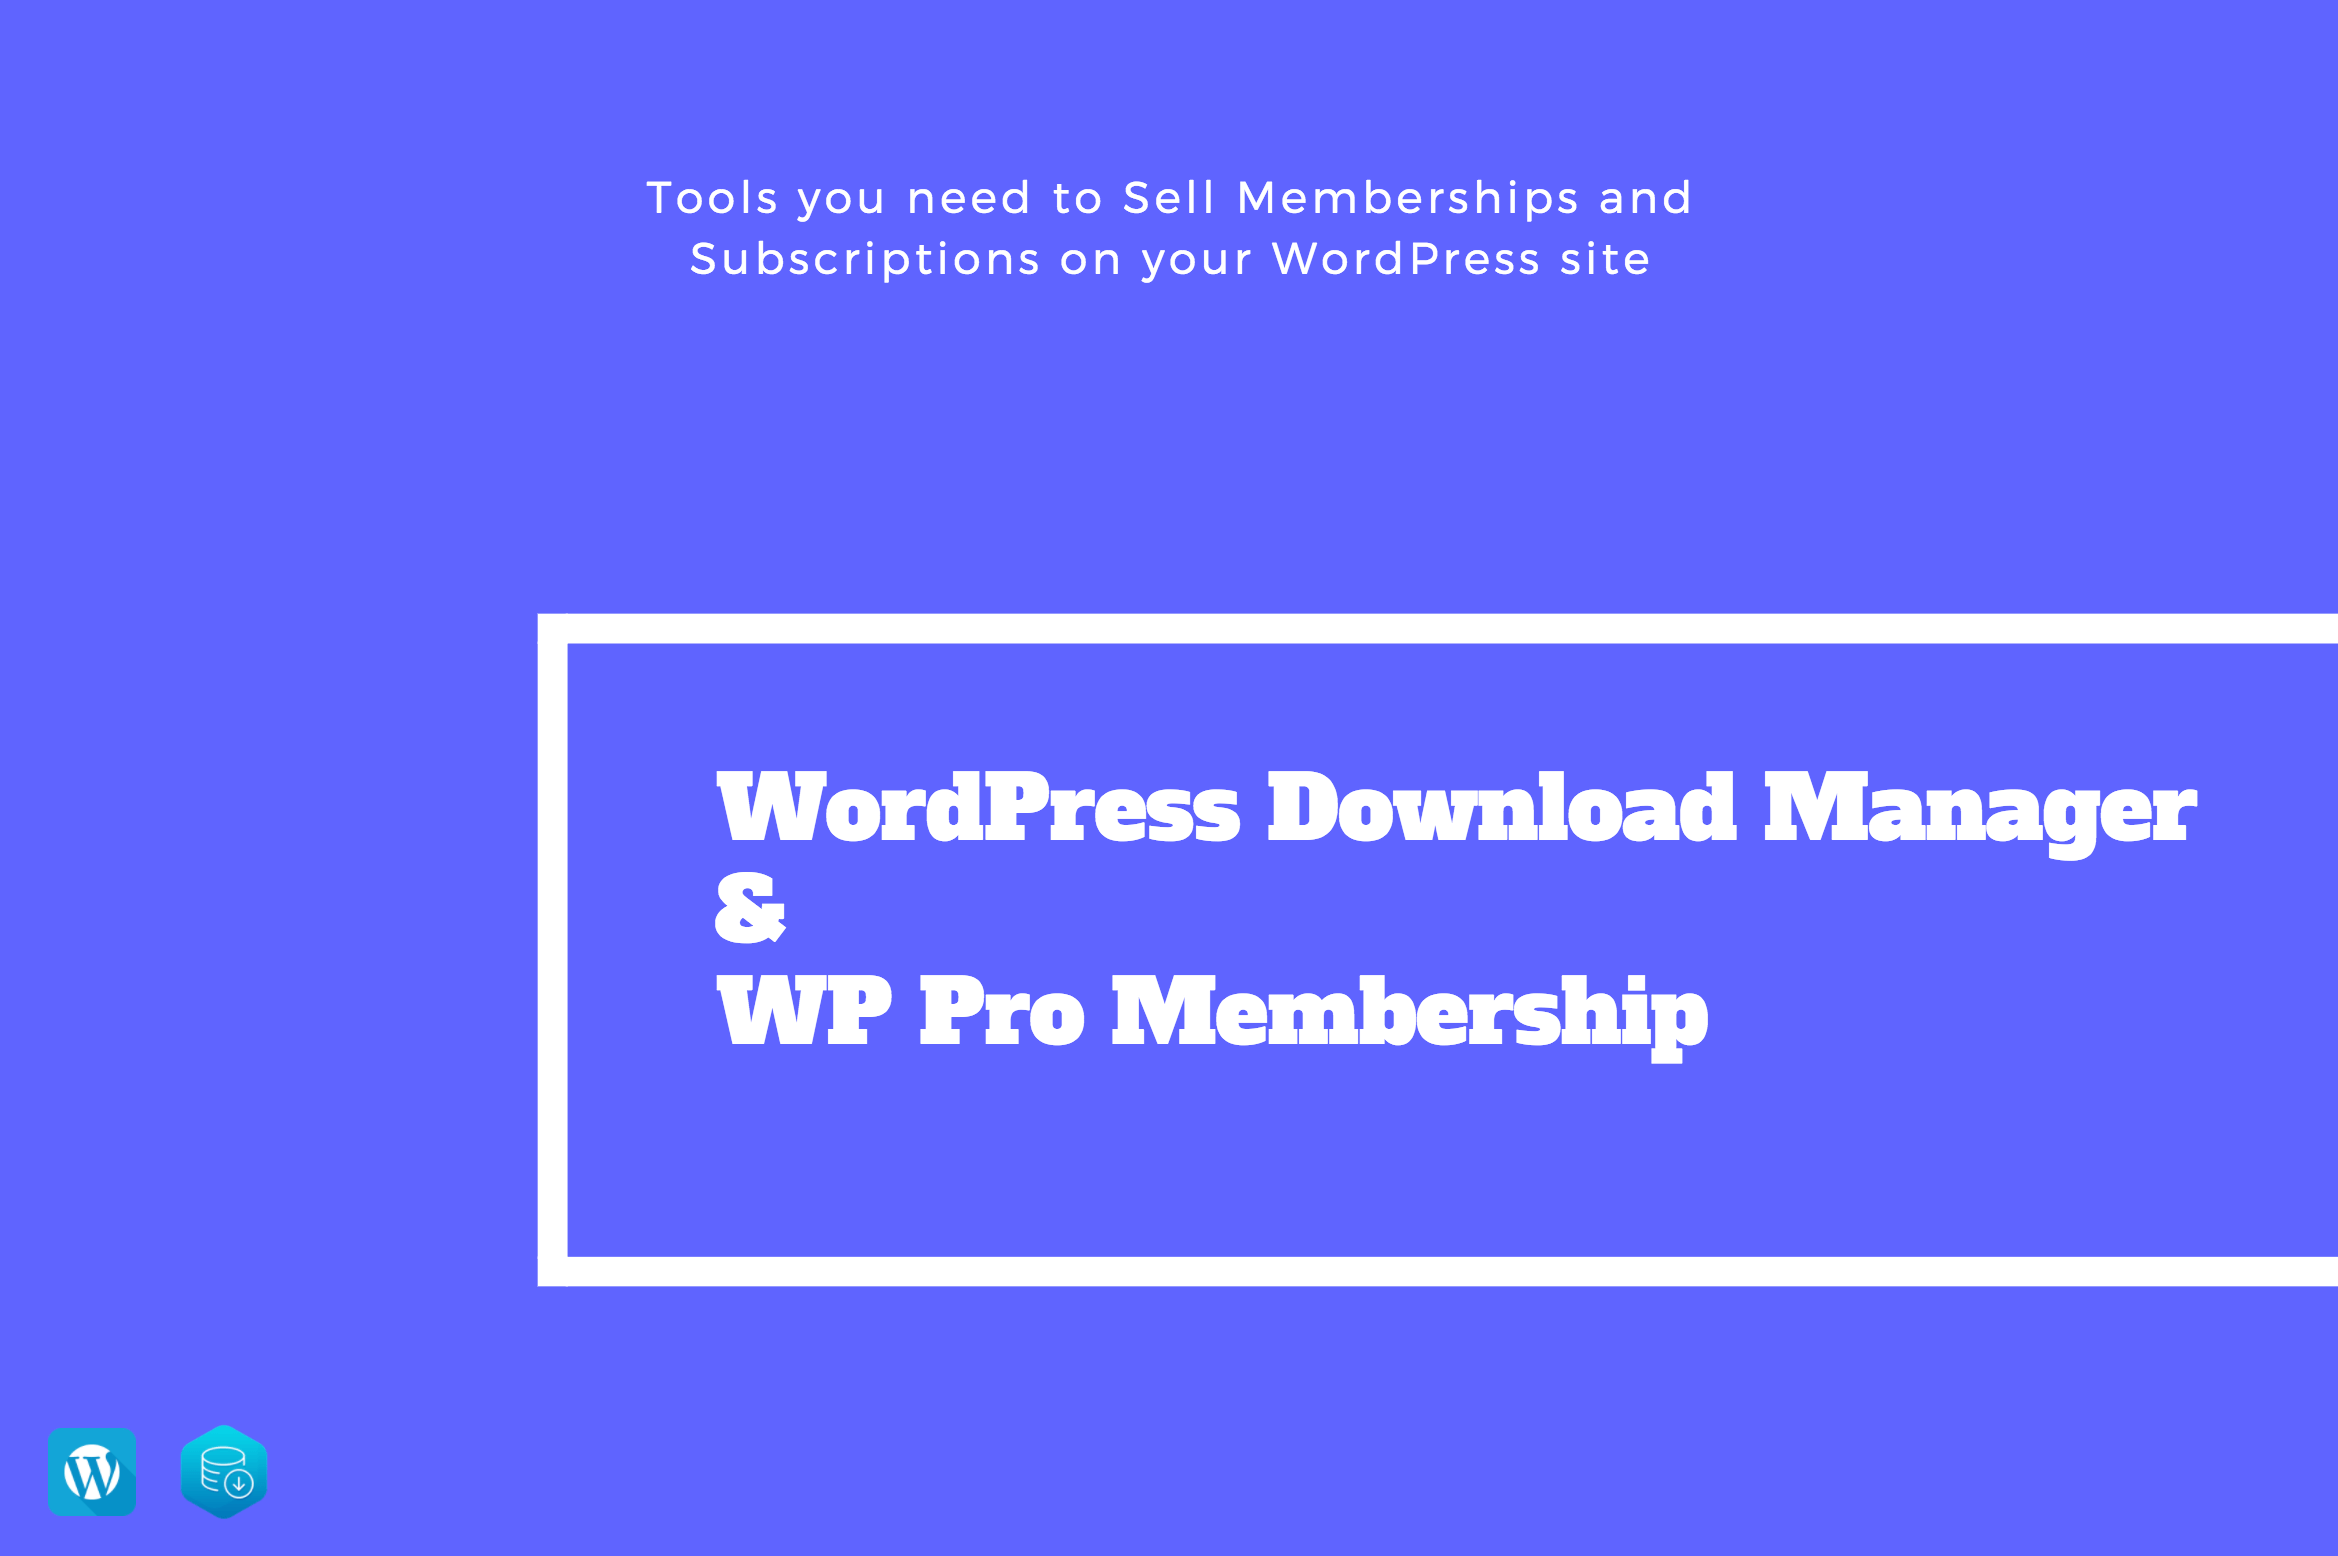 How to sell memberships and subscriptions on your WordPress site